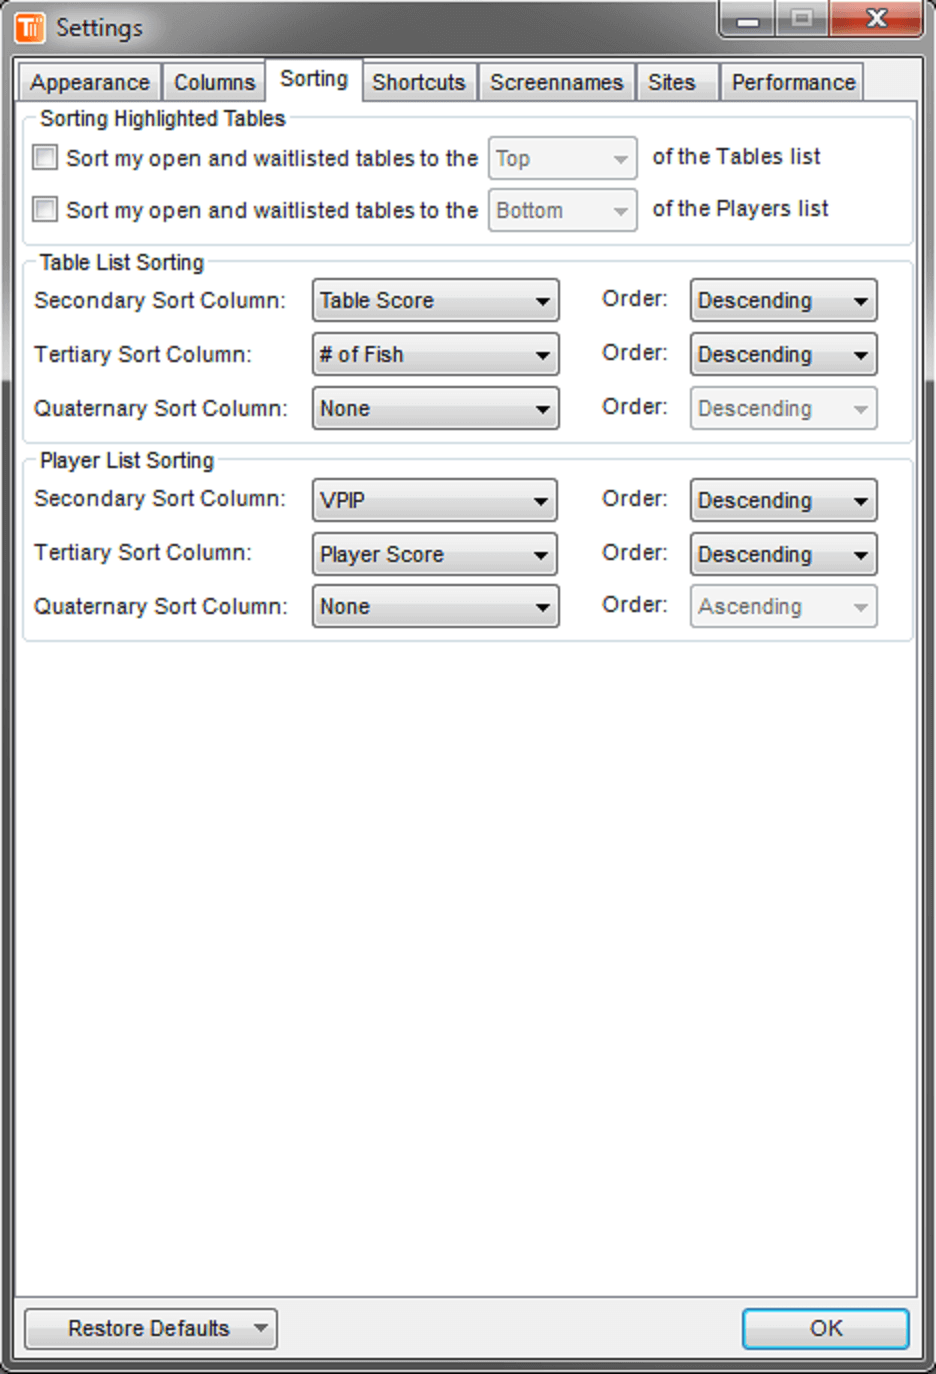 TableScan Turbo - Settings3